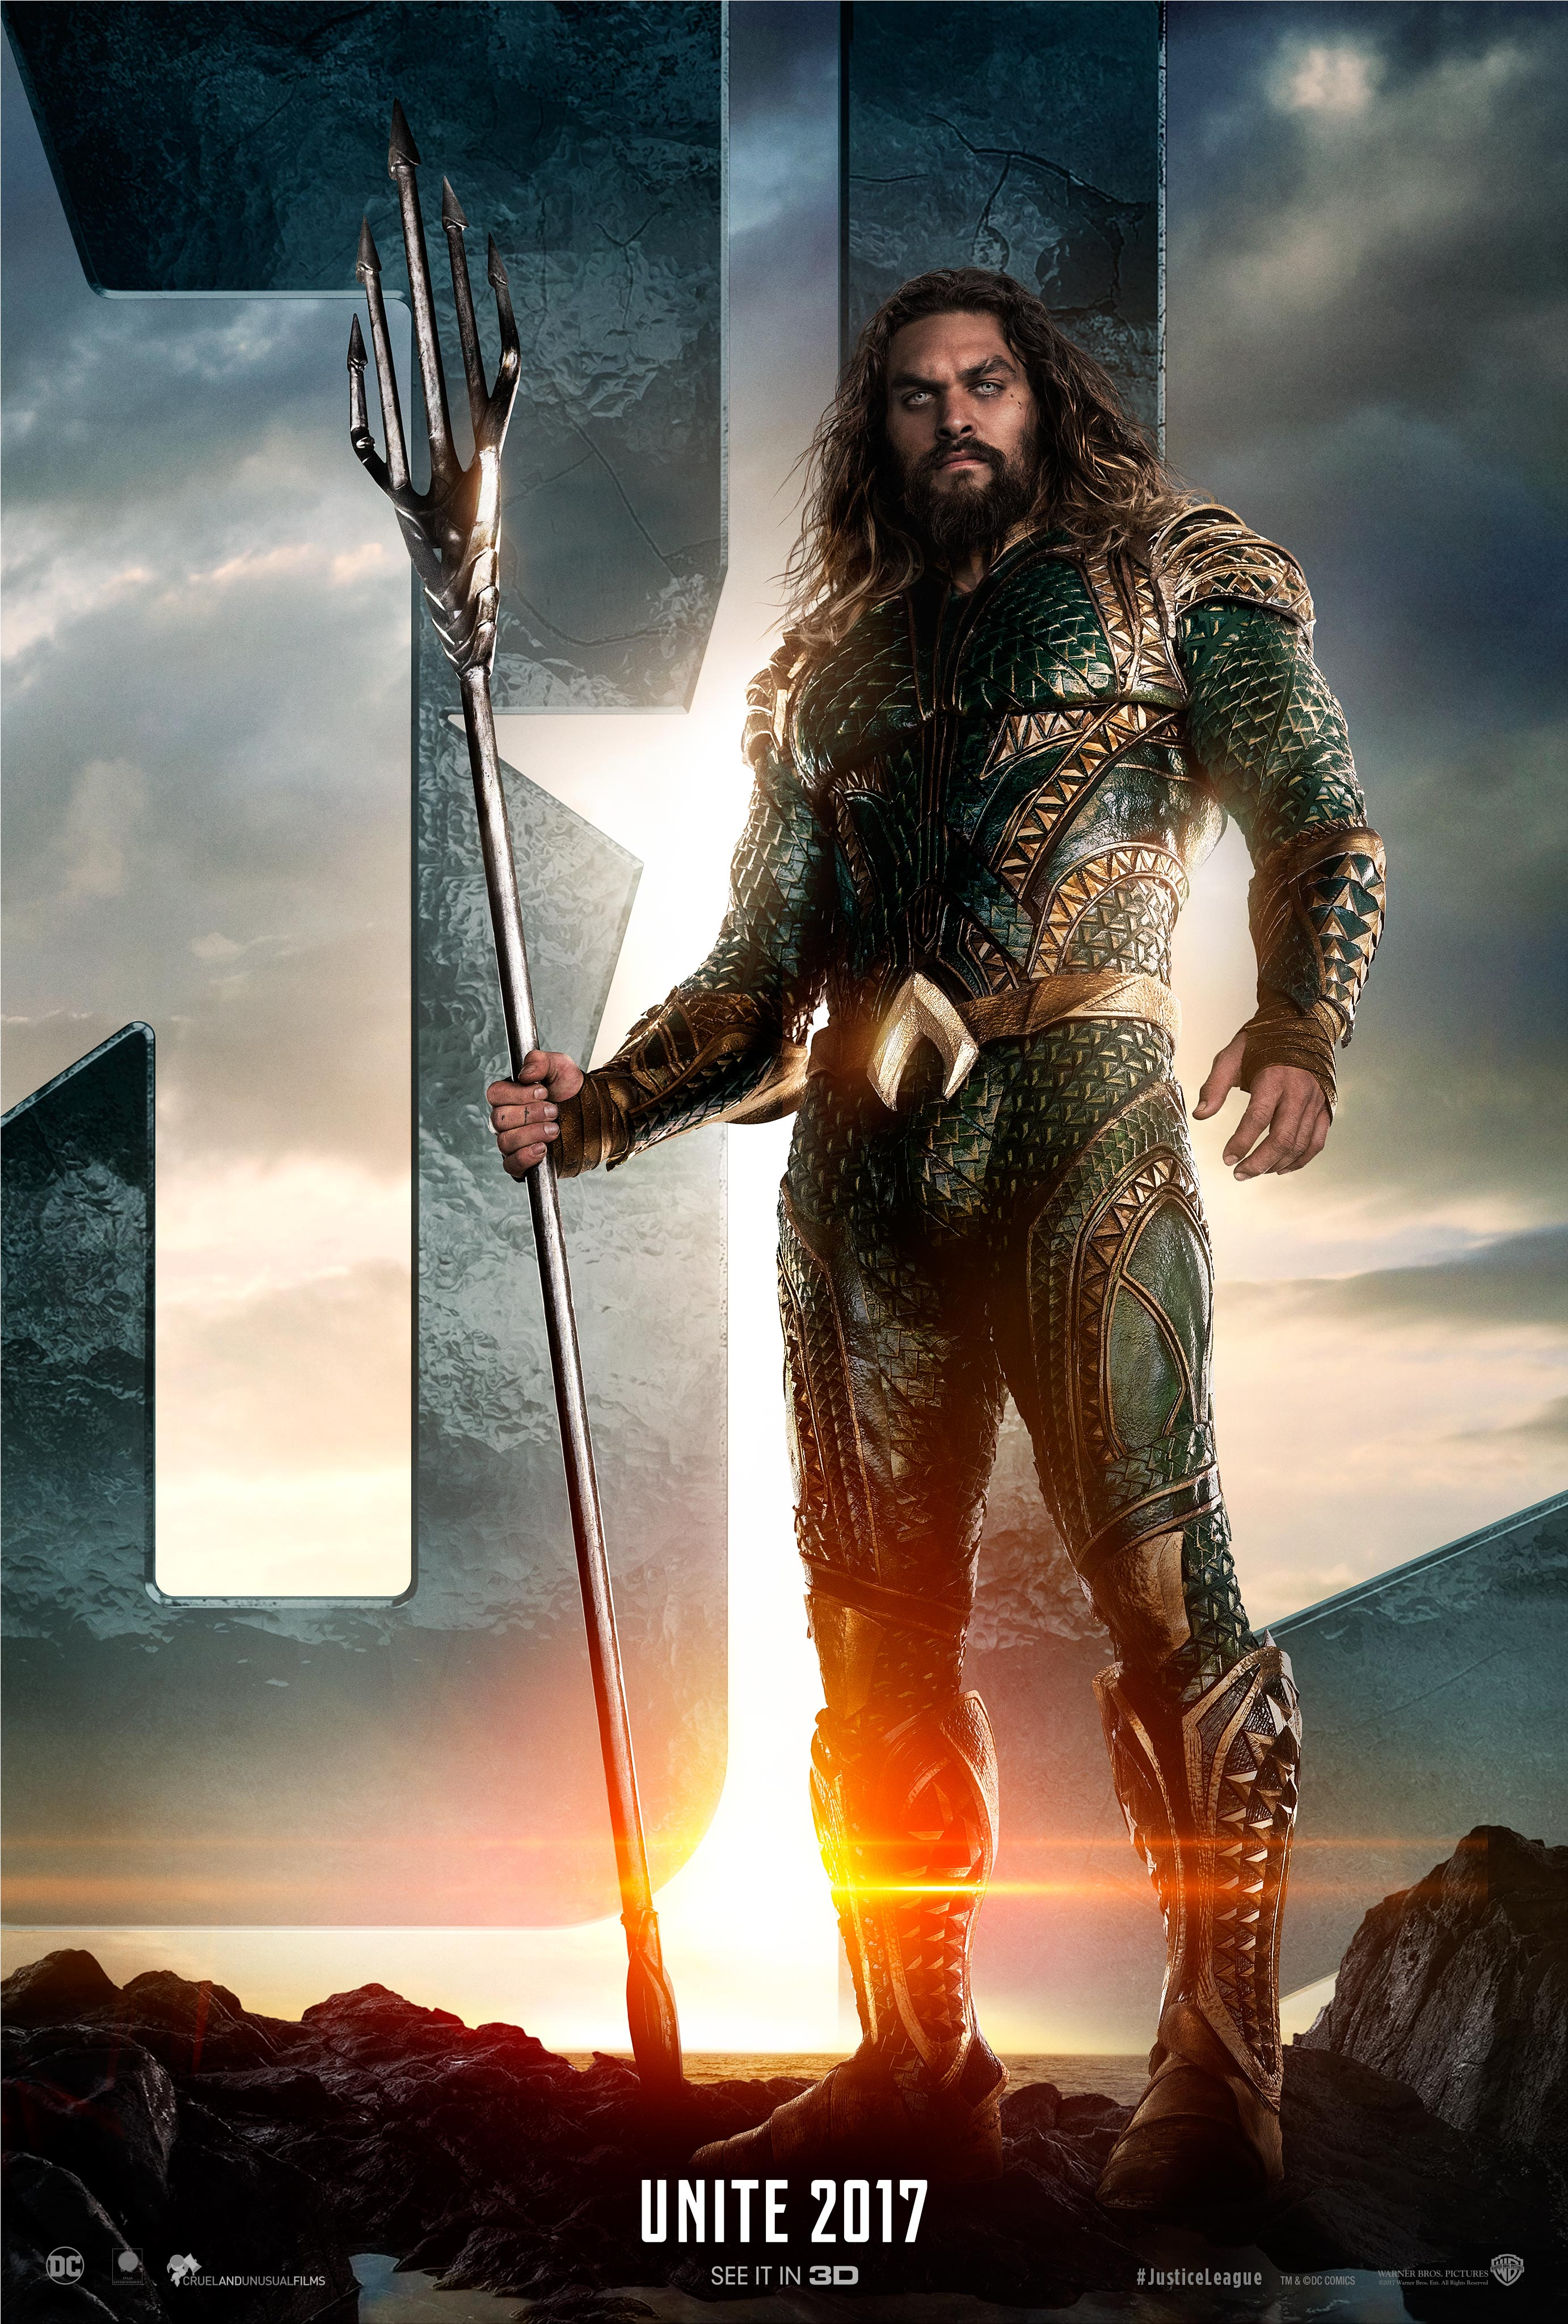 New JUSTICE LEAGUE Teaser Trailers and Character Posters for Aquaman, Batman and Flash (more to come)!